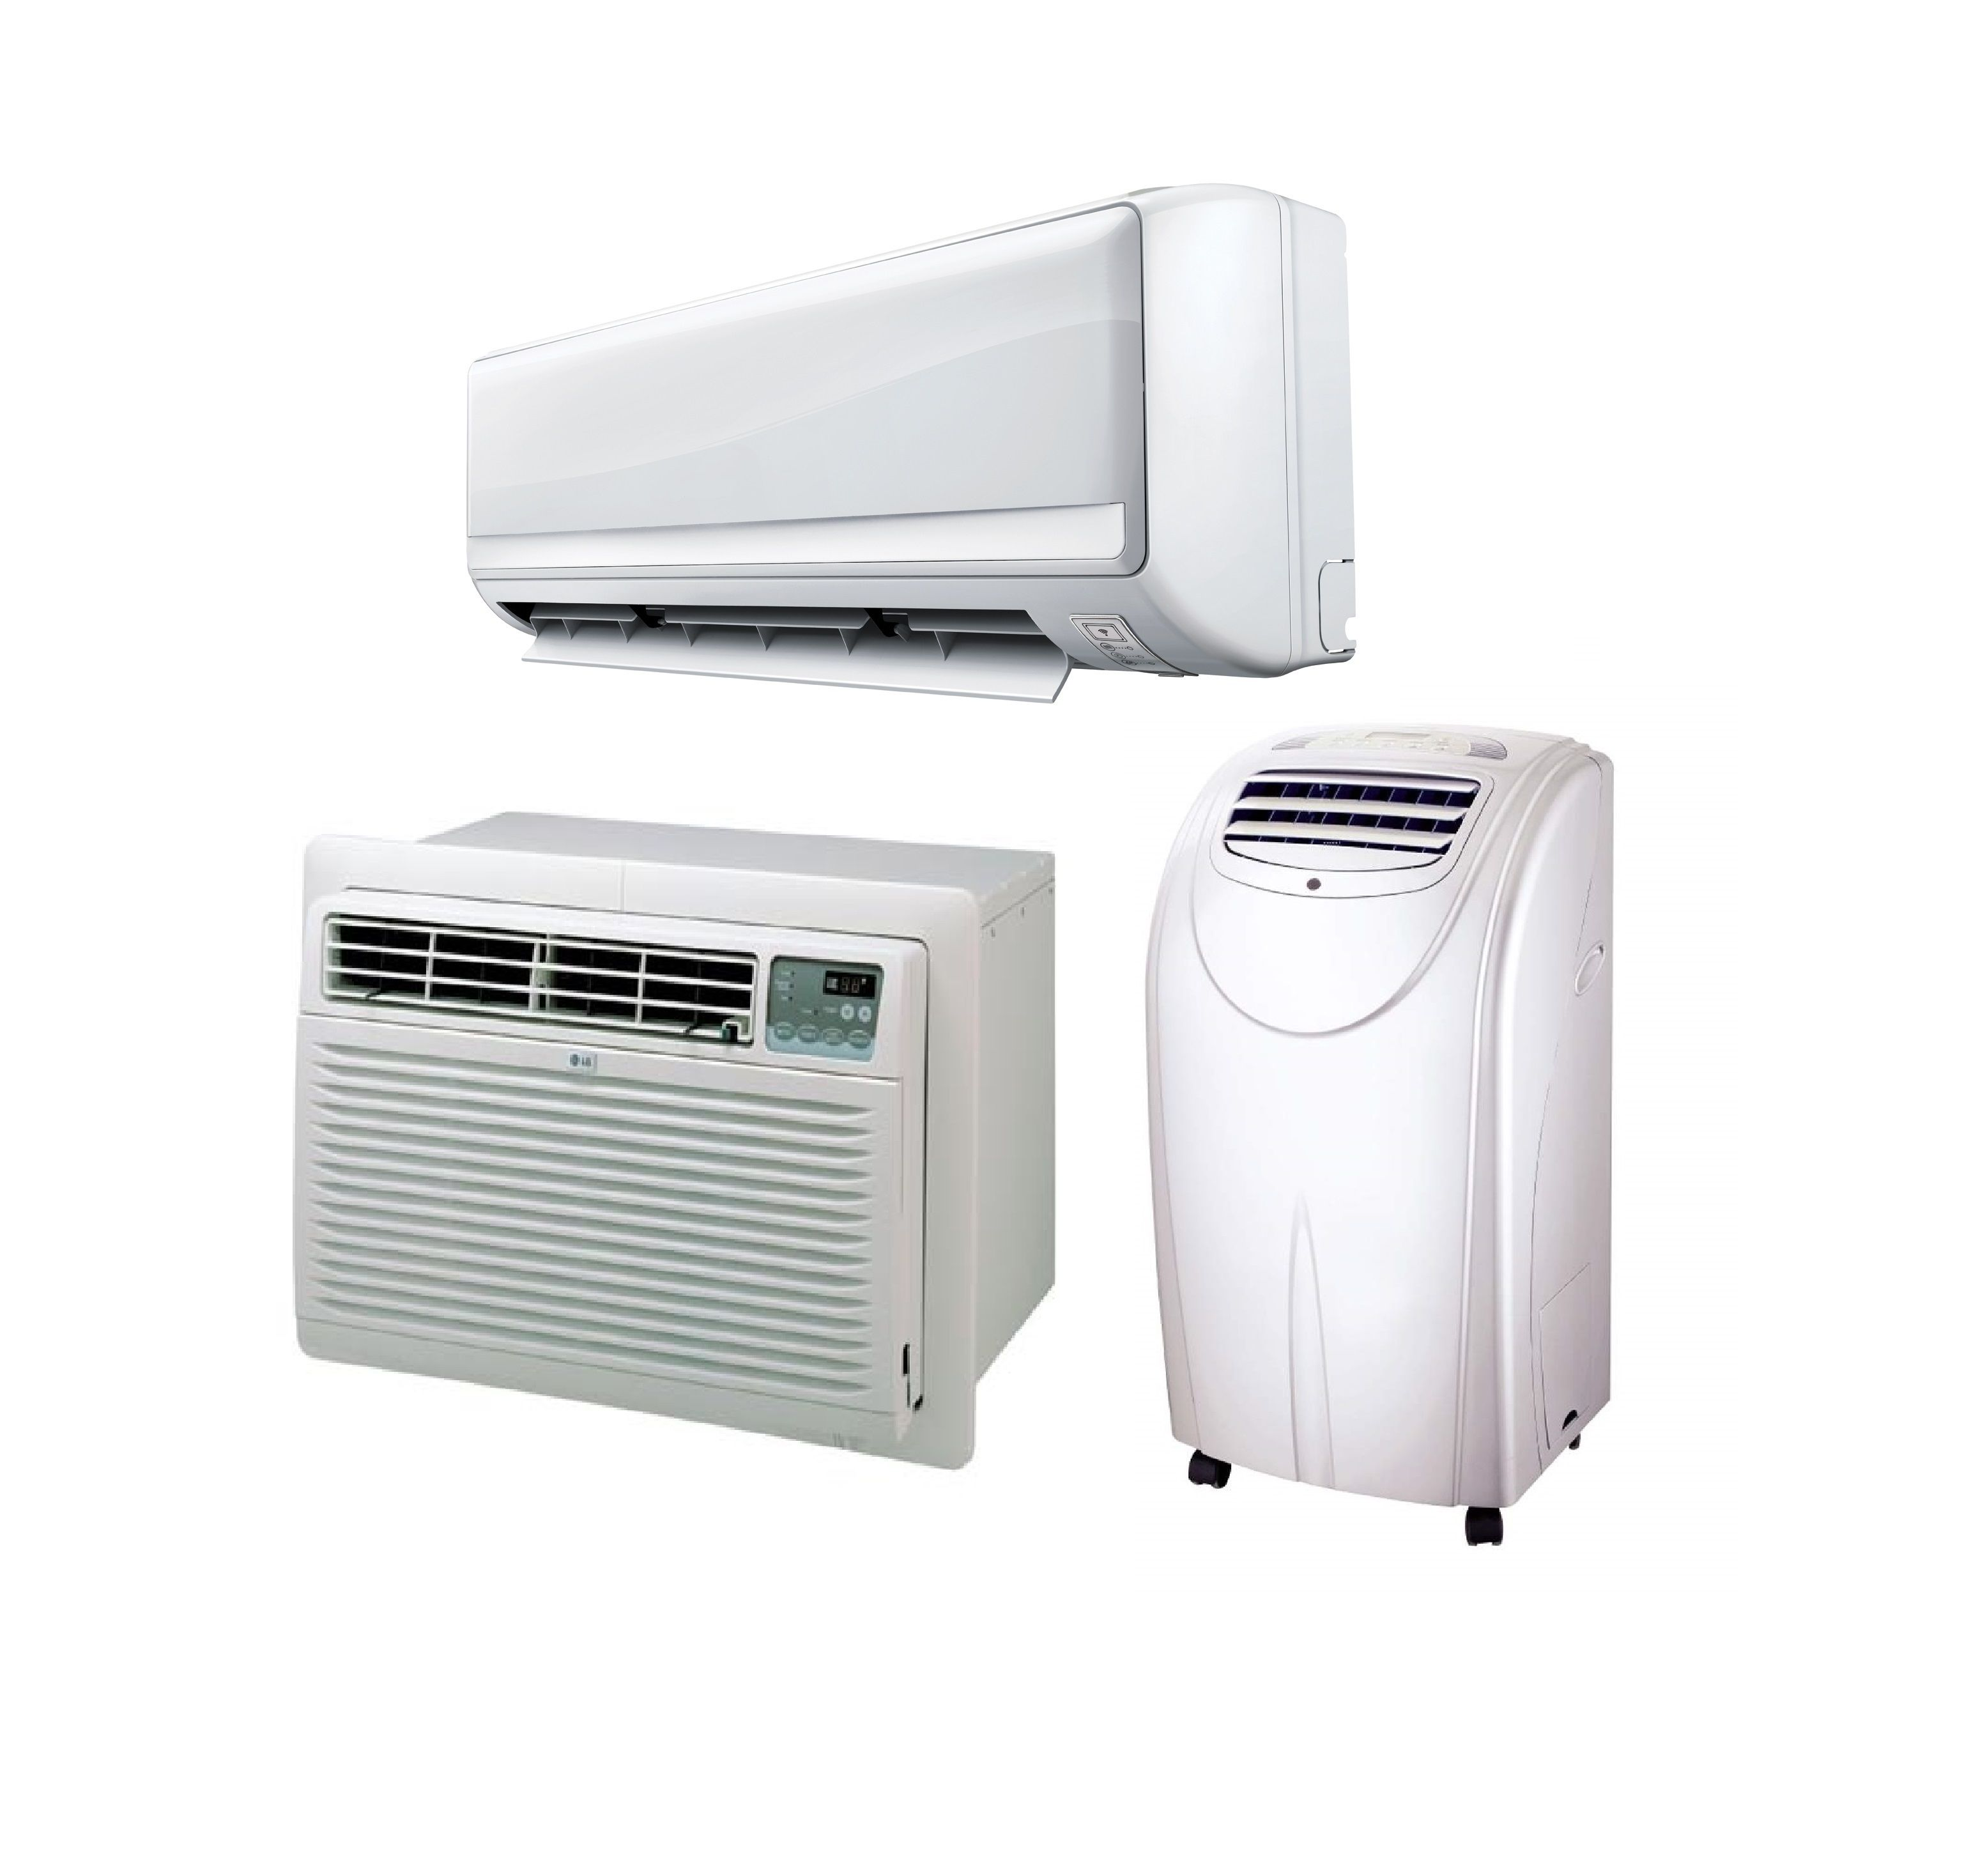 Uncategorized Rent Kitchen Appliances krishna services provide the air cooler on appliance repair